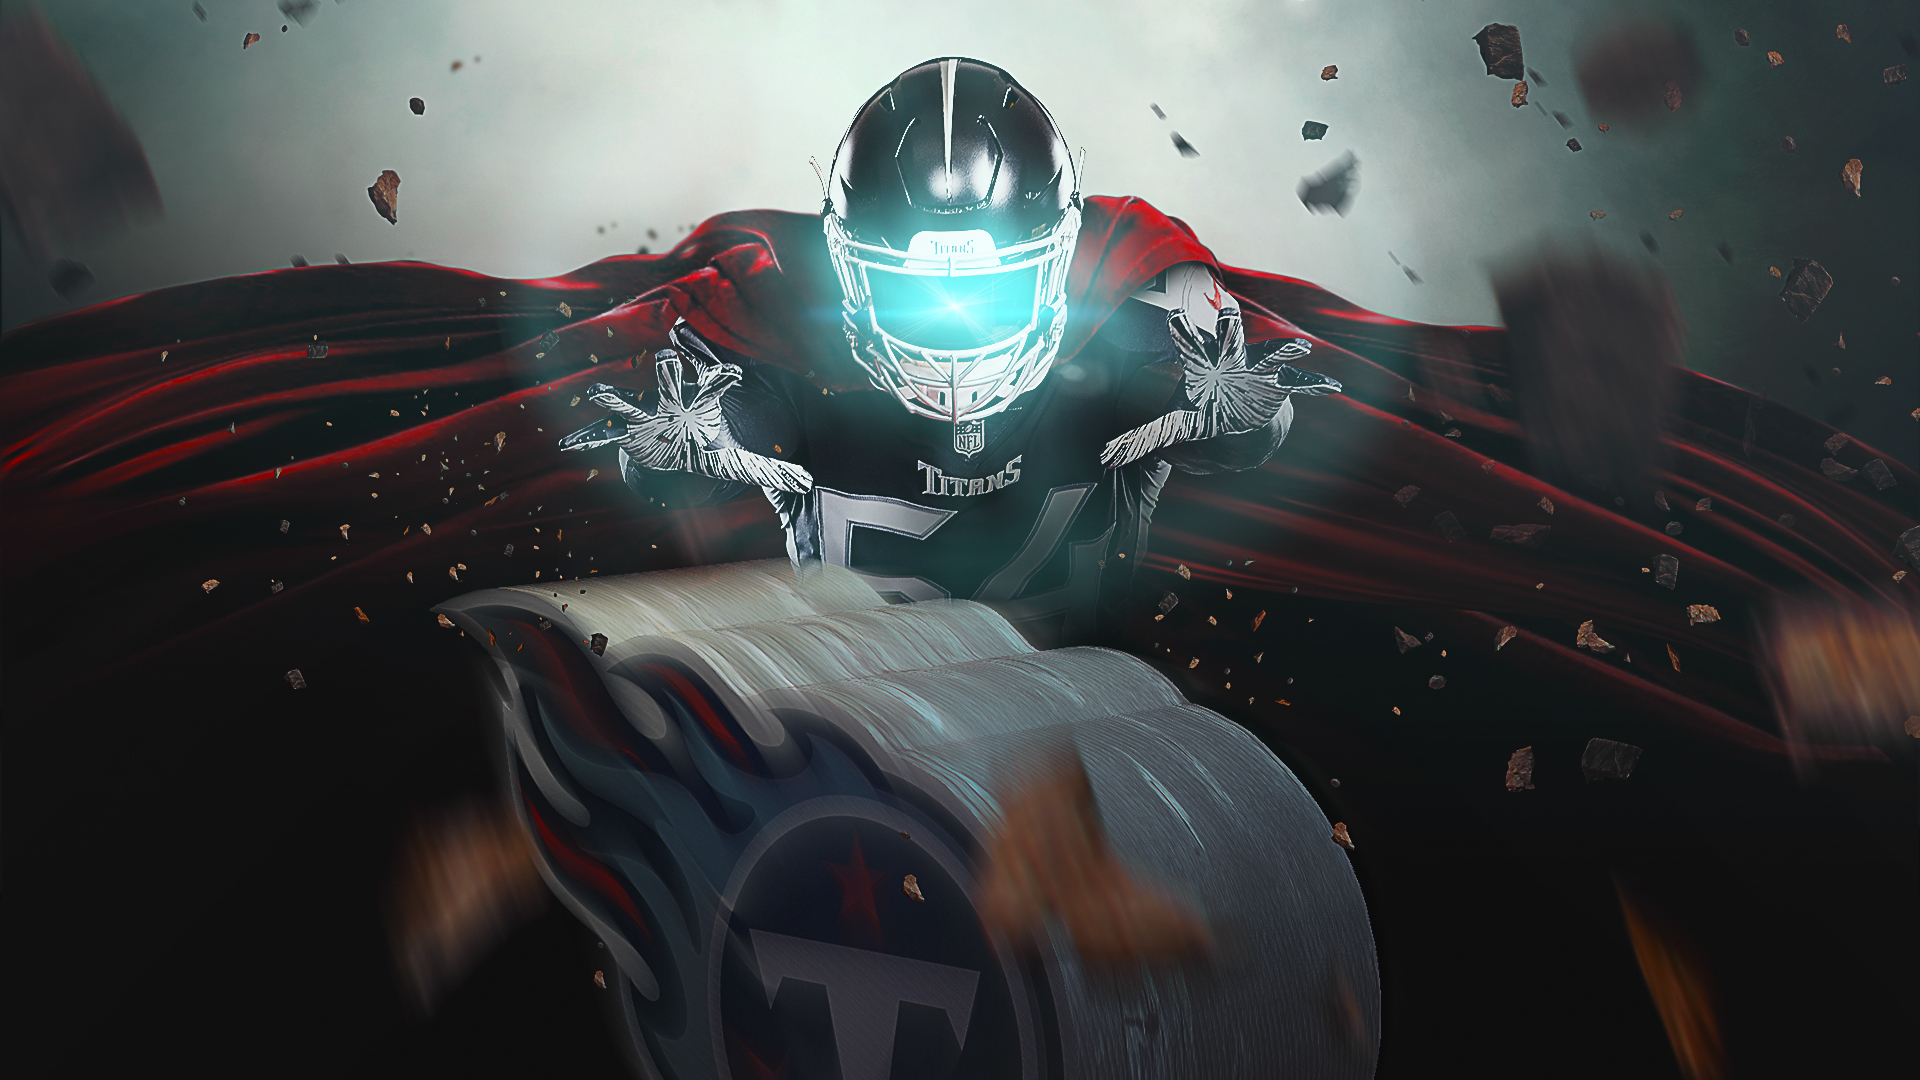 Sports Design / SMsports ›› Visual Design Composite for National Superhero Day for the Tennessee Titans